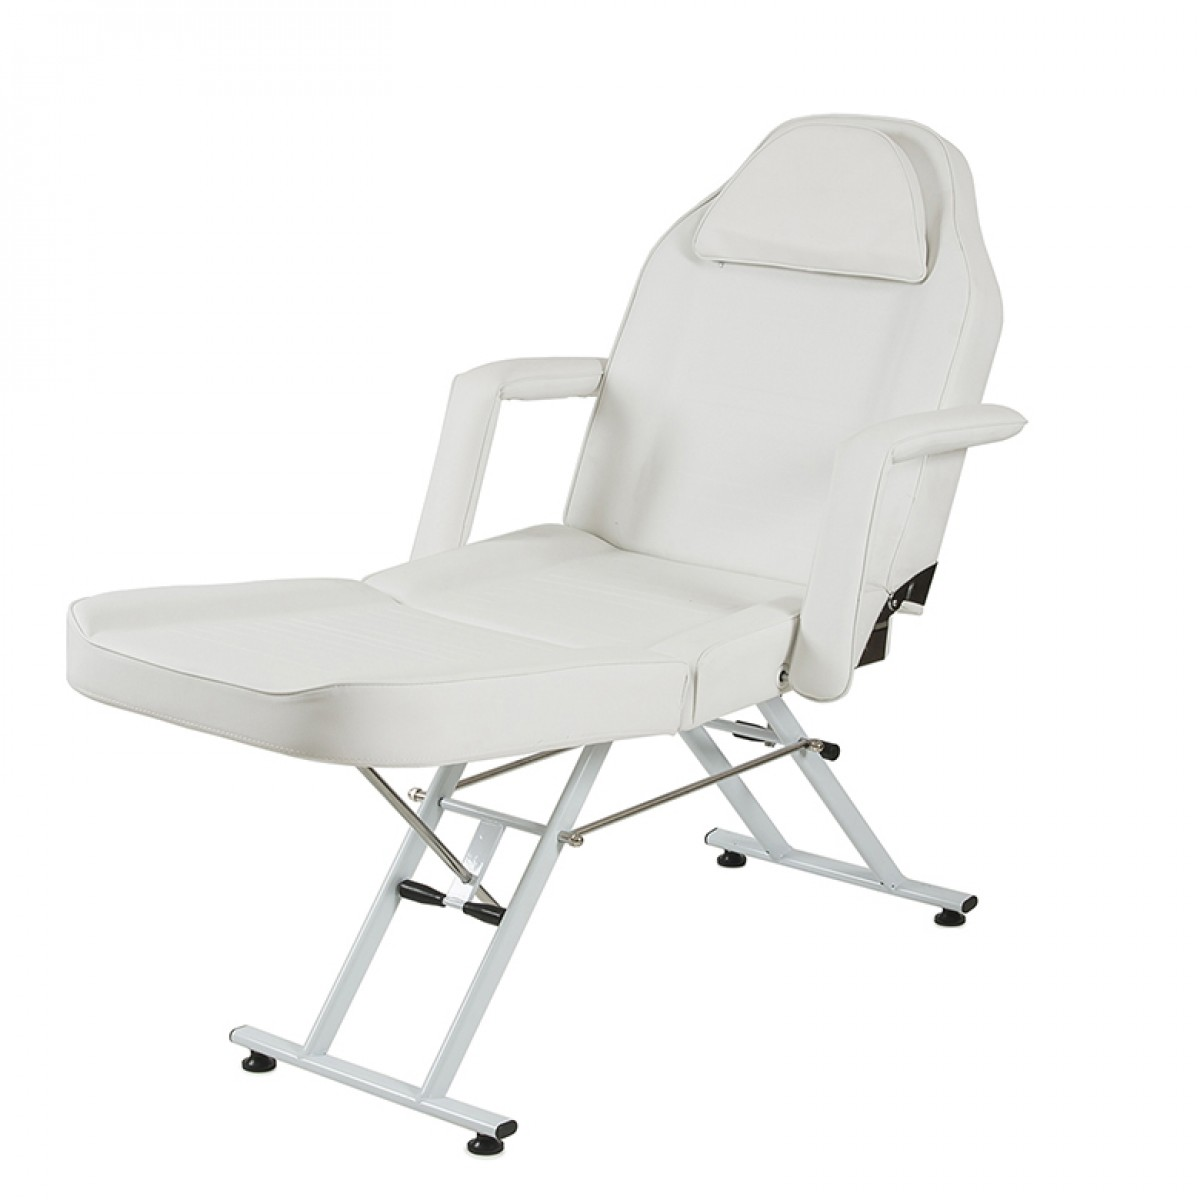 white multi purpose salon chair red cushions massage facial bed adjustable table beauty spa